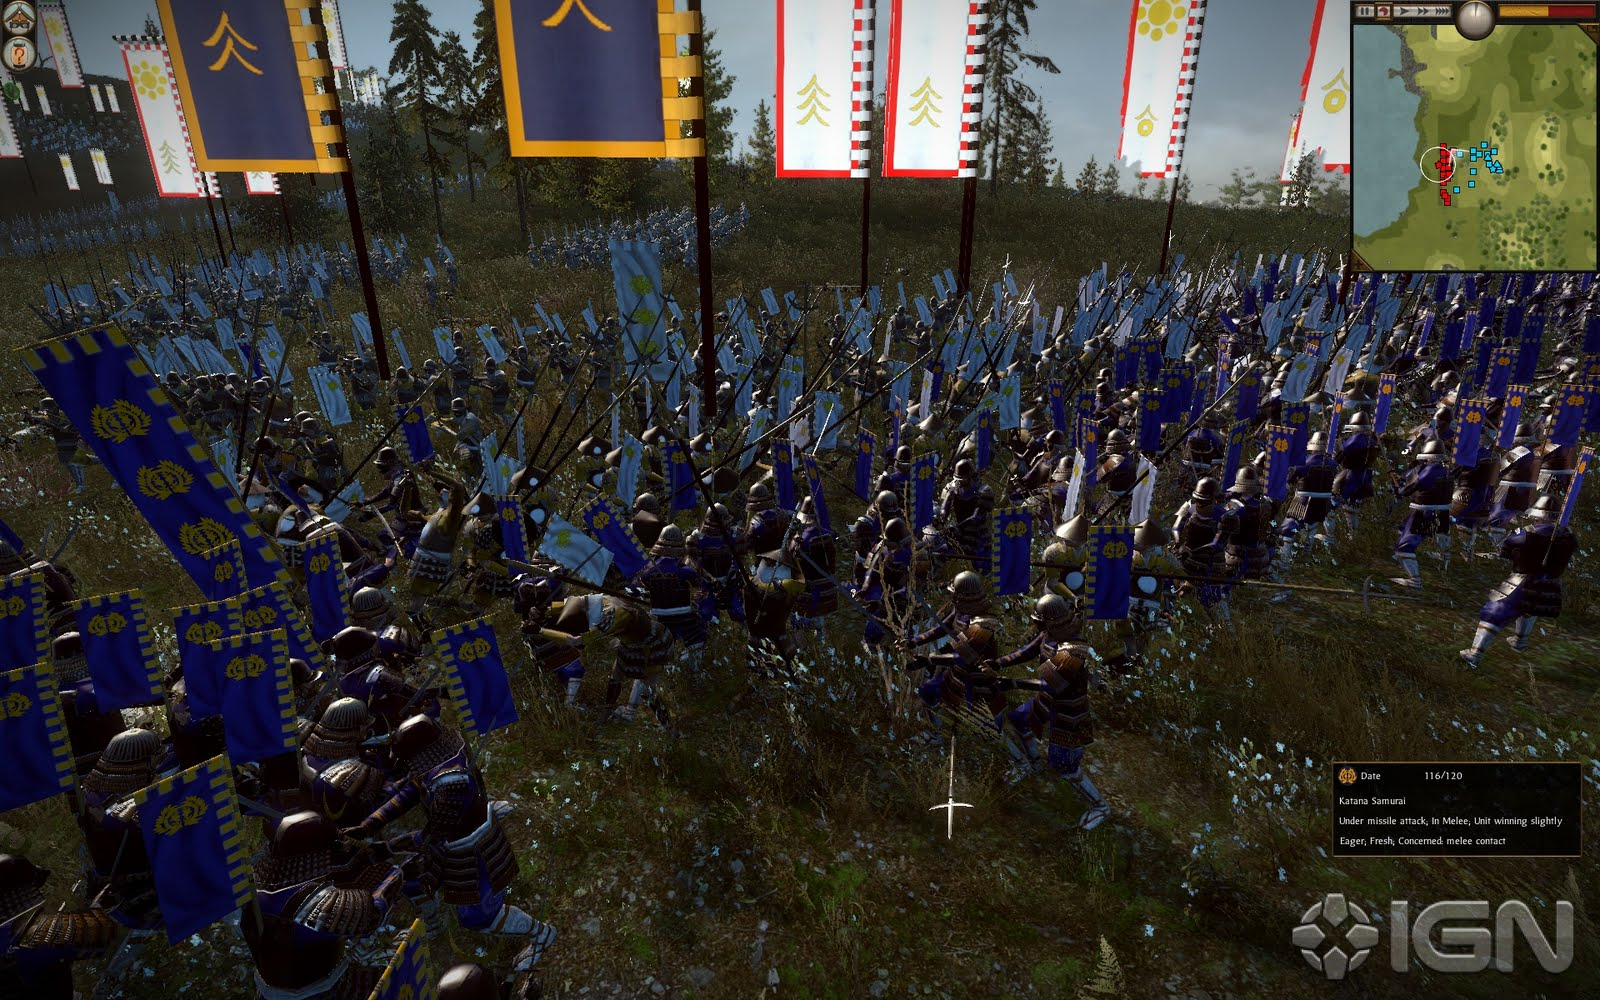 shogun 1 total war download